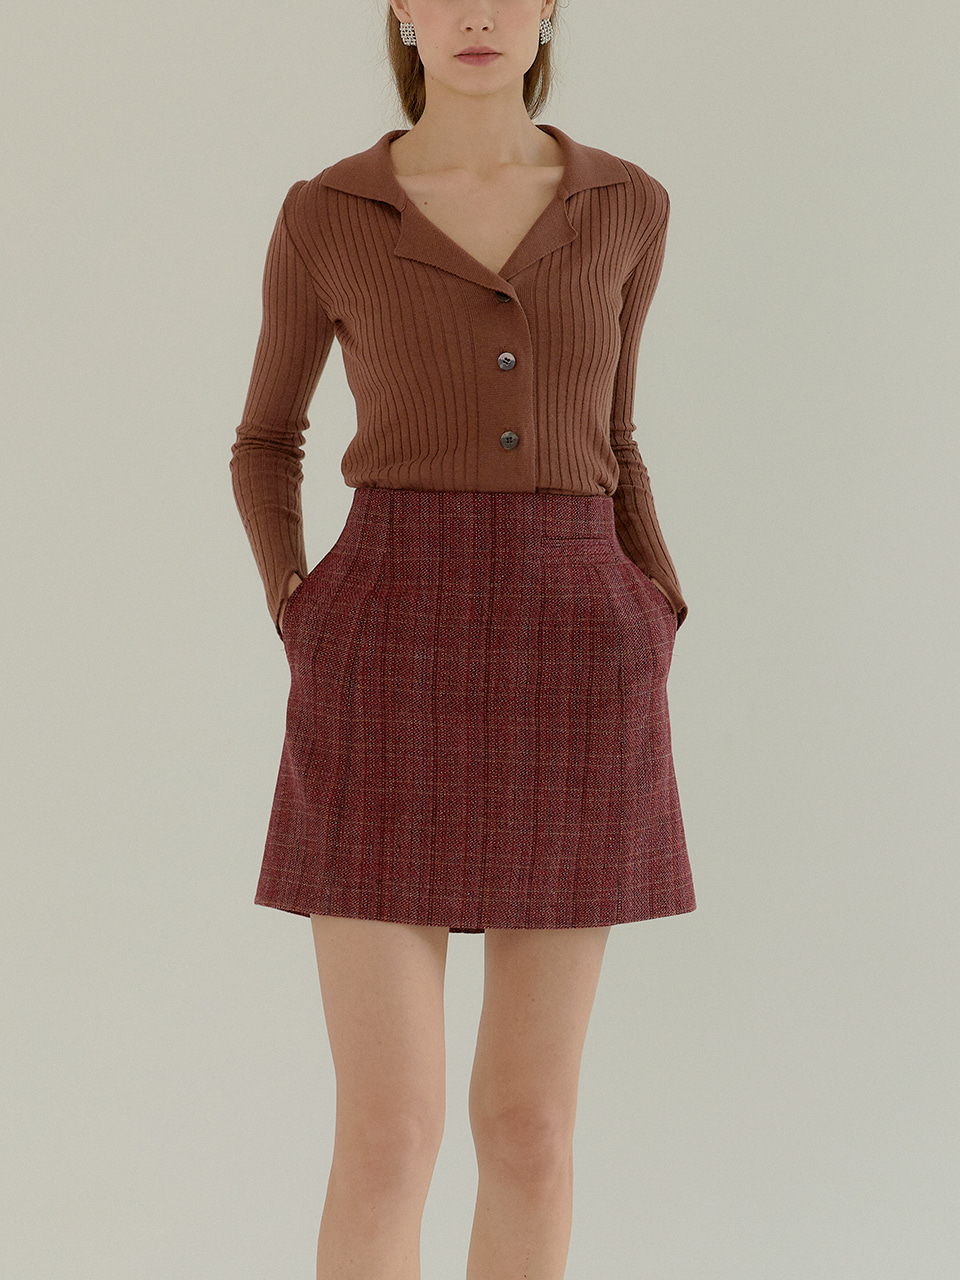 JEANNE_High Waisted Jacquard Mini Skirt_BRICK RED